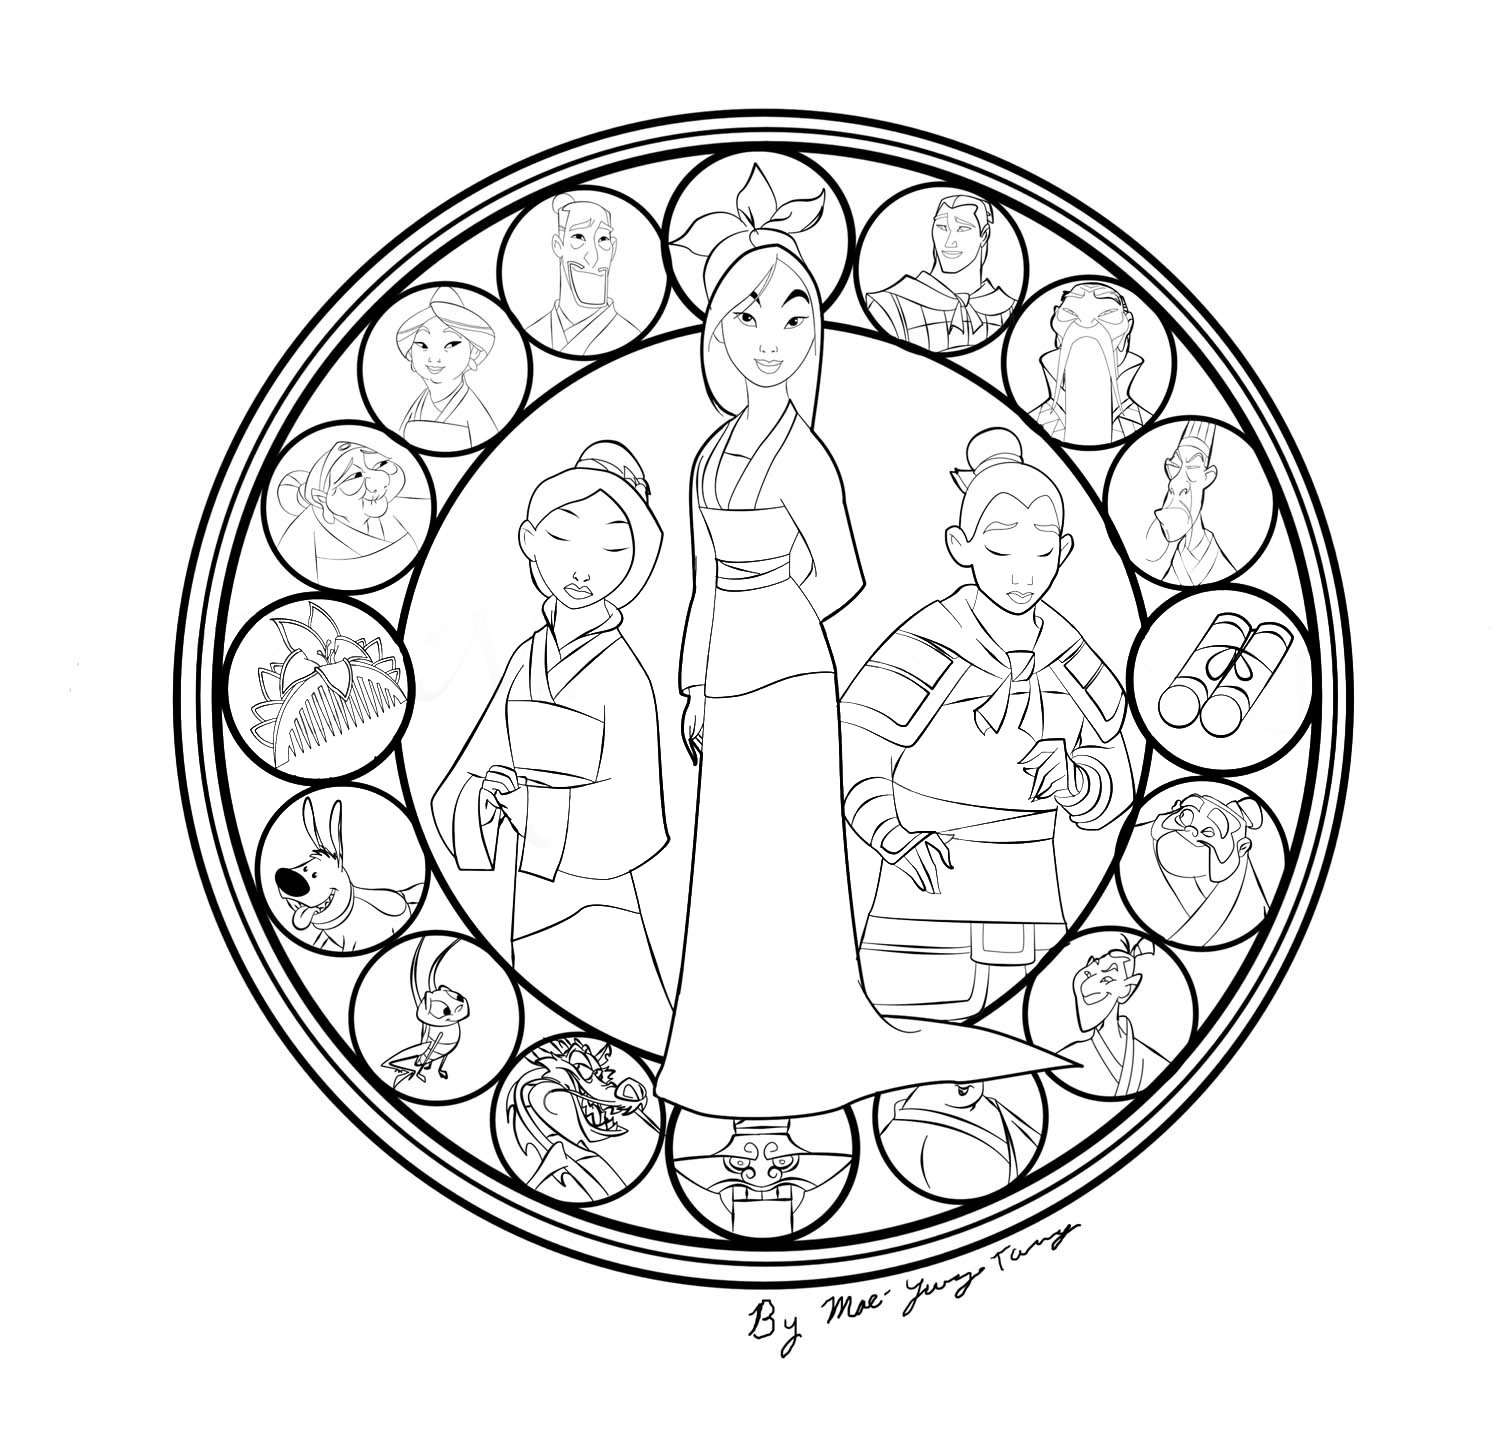 Song Of Mu Lan Stained Glass Disney Princess Free Coloring Sheets